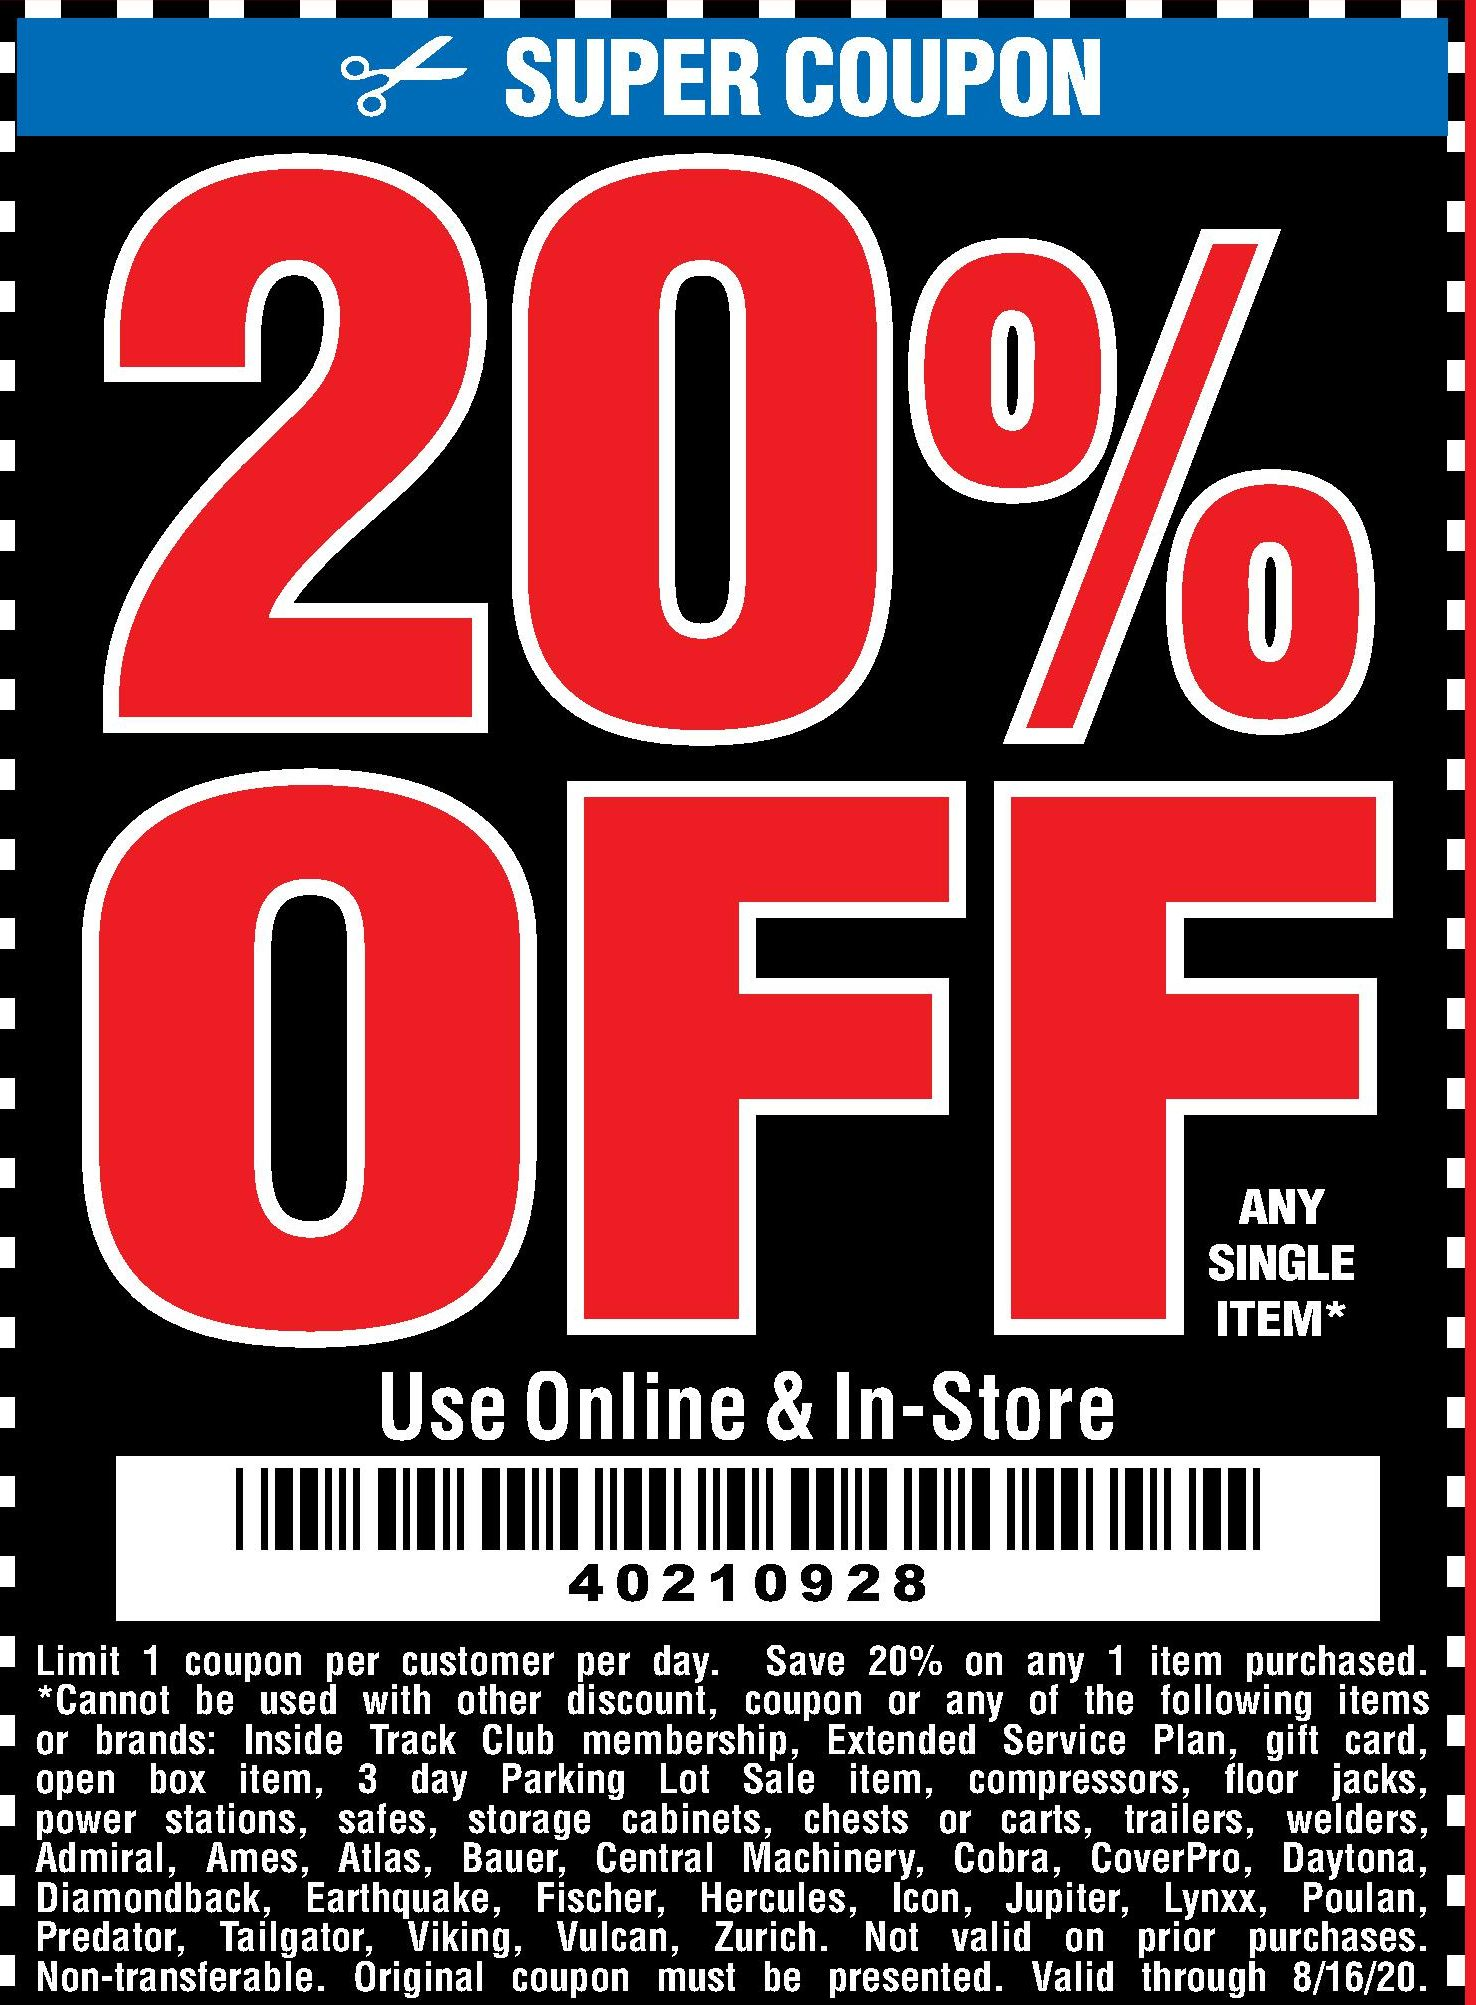 Harbor Freight Tools Coupon Database Free Coupons Percent Off Coupons Toolbox Coupons